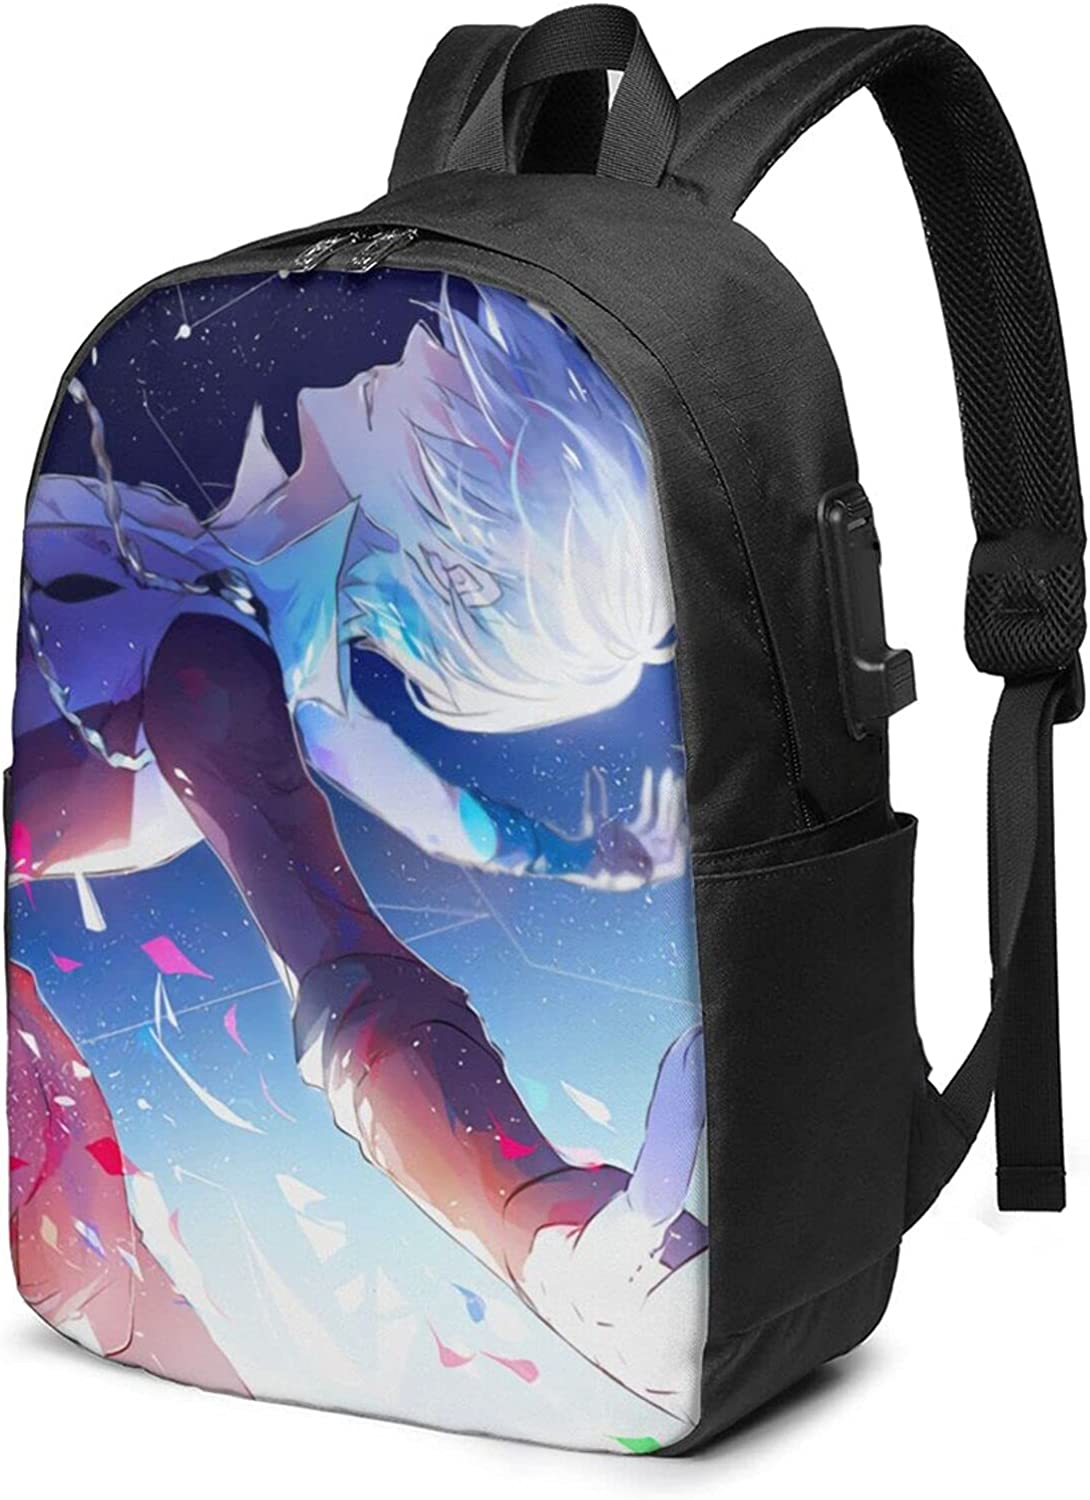 Yuri On trust Year-end annual account Ice Backpack Travel With Po Usb Laptop Charging